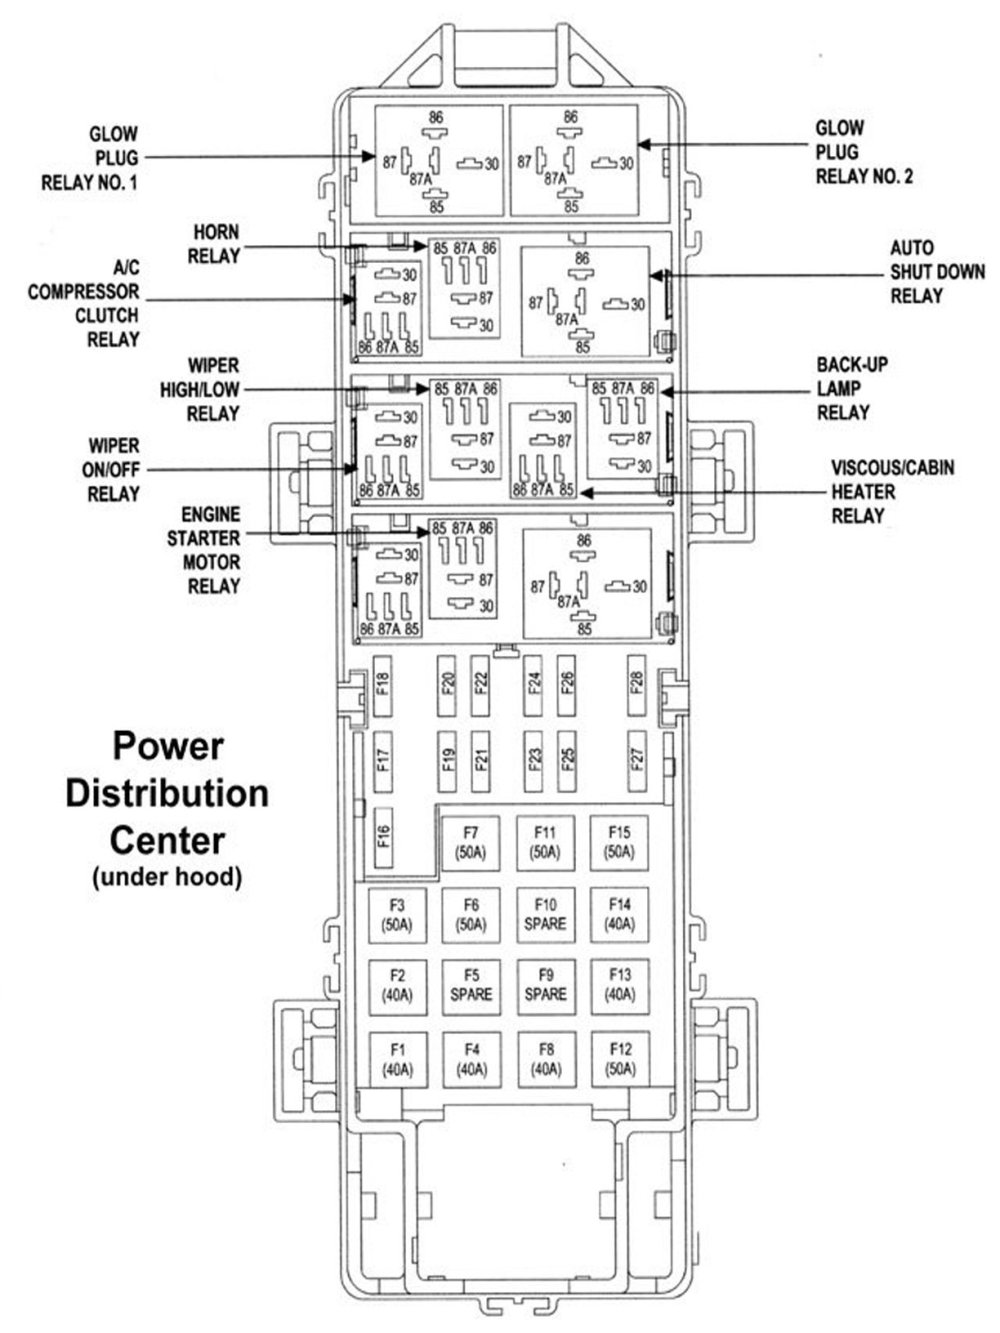 medium resolution of 96 jeep grand cherokee under hood fuse diagram wiring diagram tags 96 jeep cherokee fuse box layout 96 jeep fuse box layout